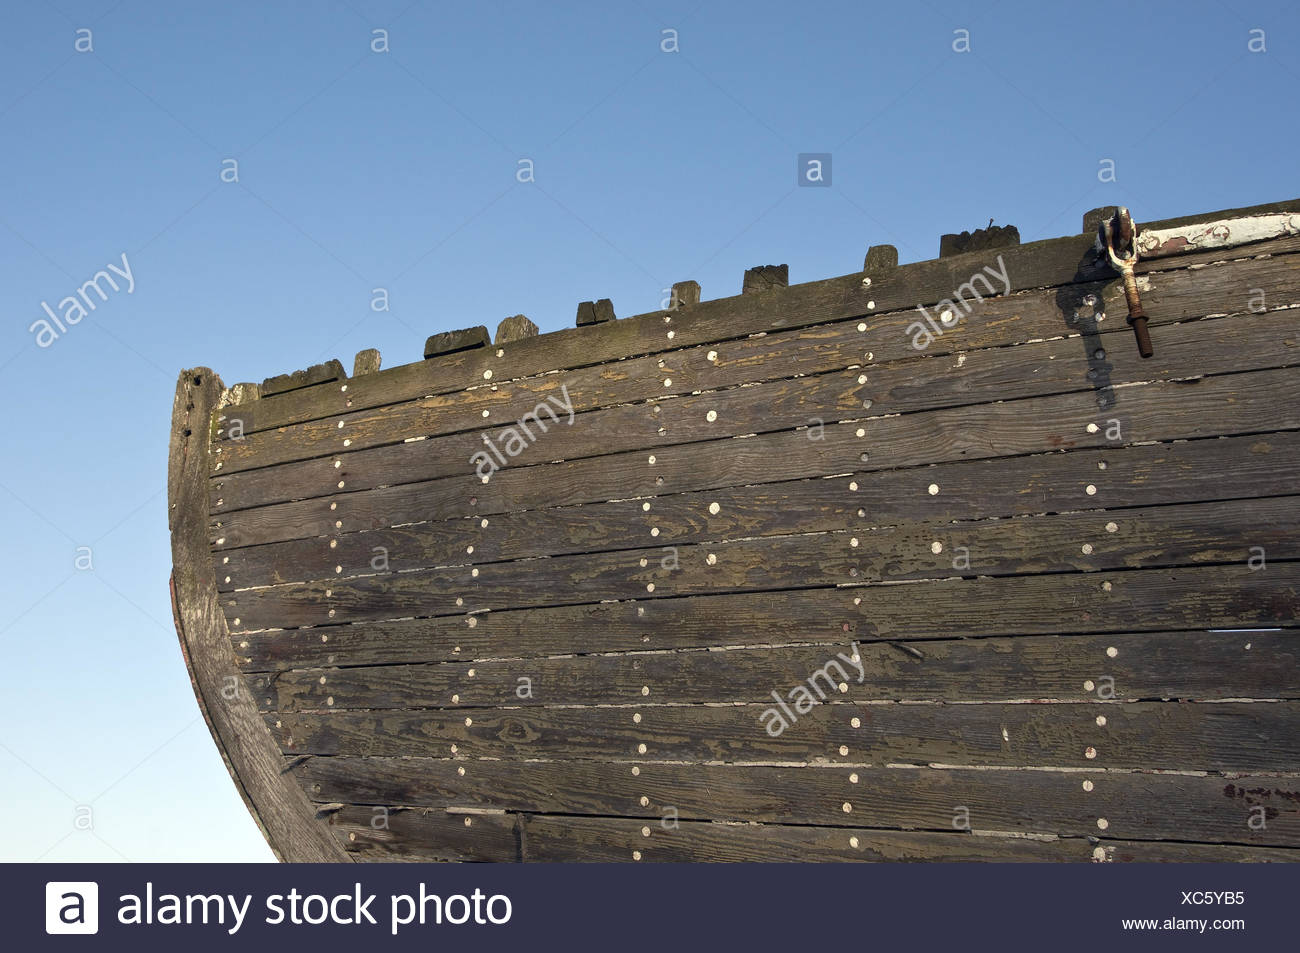 Conception,old longboat,bug,detail, - Stock Image